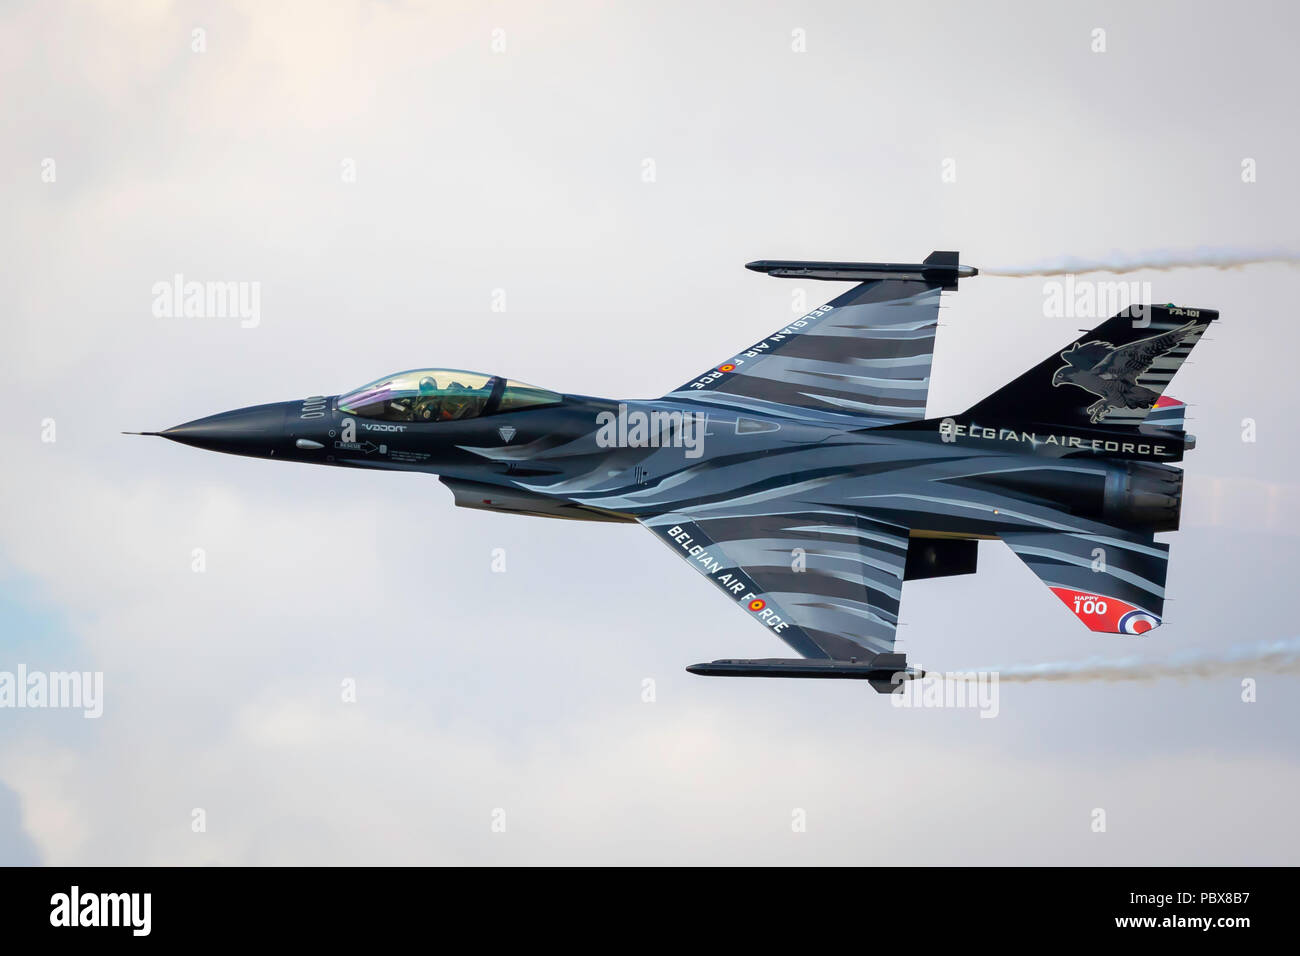 Fairford, Gloucestershire, Royaume-Uni - Juillet 14th, 2018: la Force Aérienne Belge Lockheed Martin General Dynamics F-16 Fighting Falcon termine son Aerobatic Displ Banque D'Images